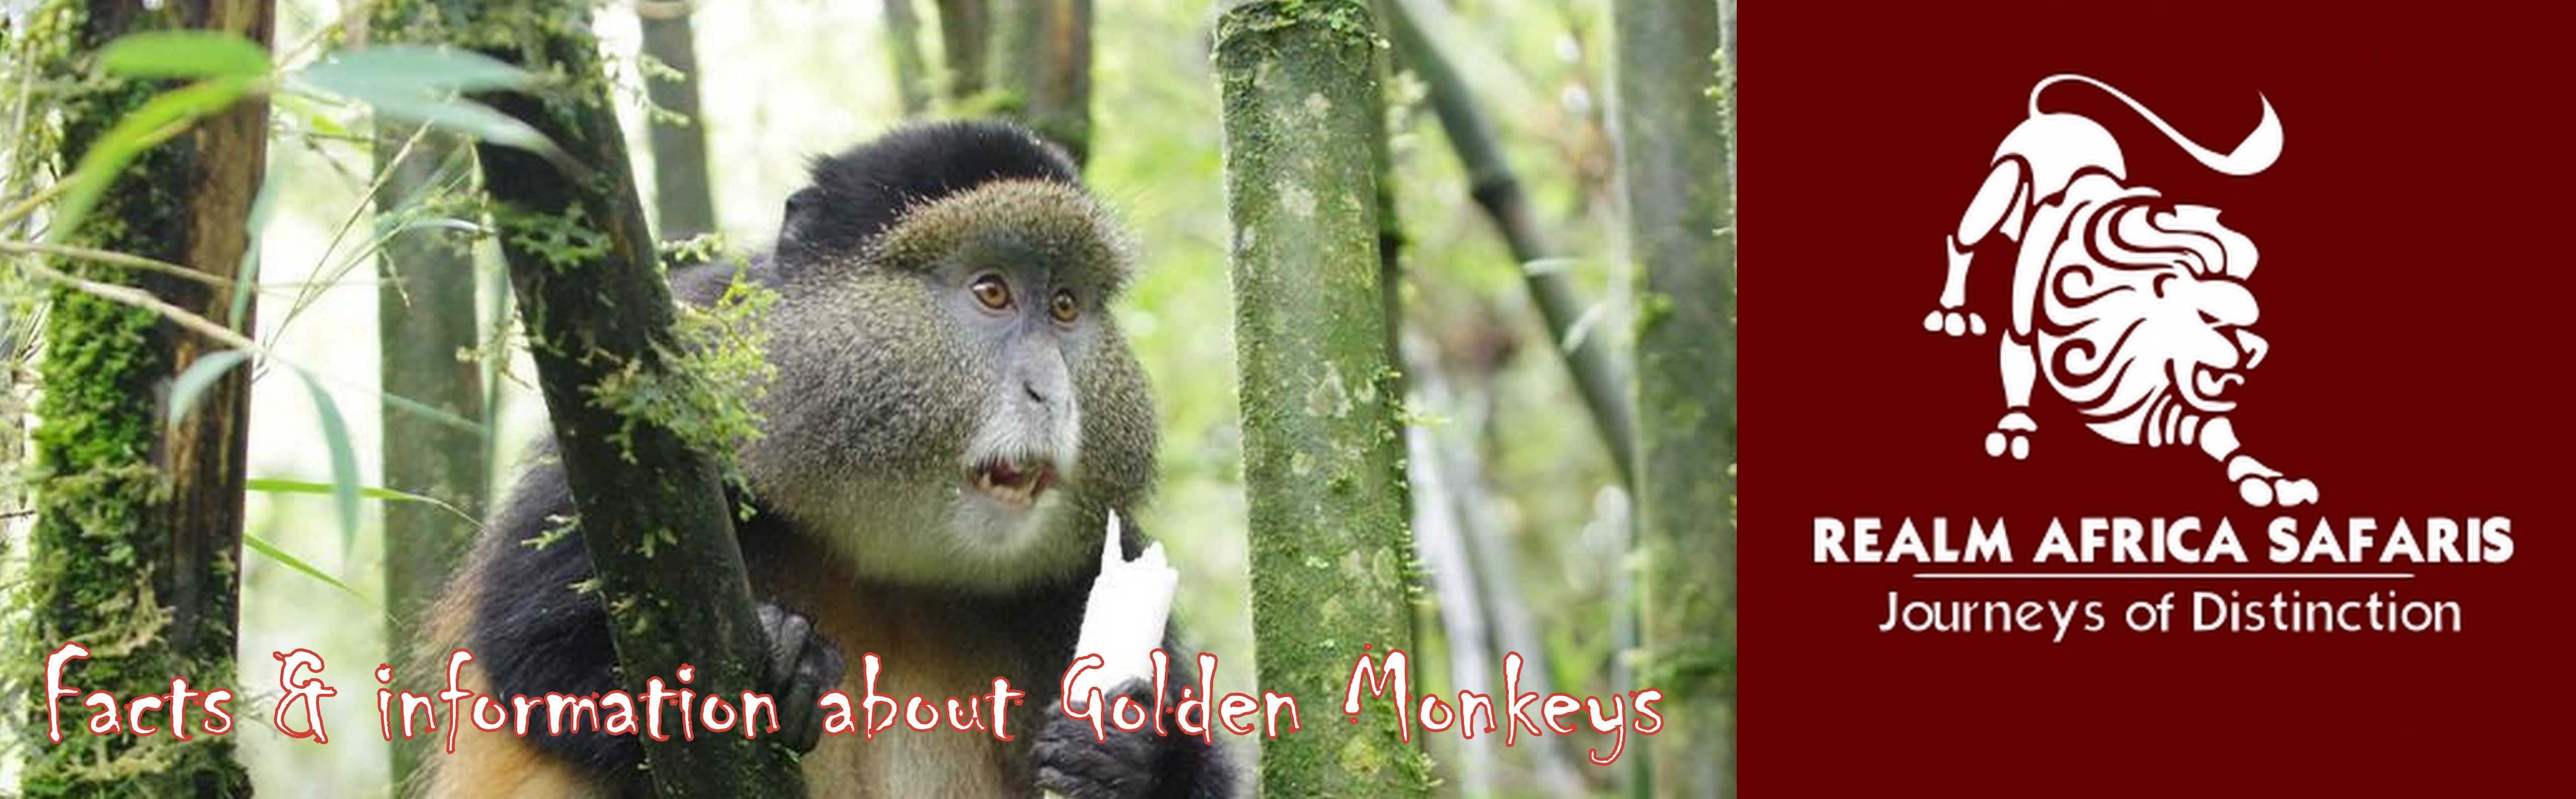 facts and information about Golden Monkeys